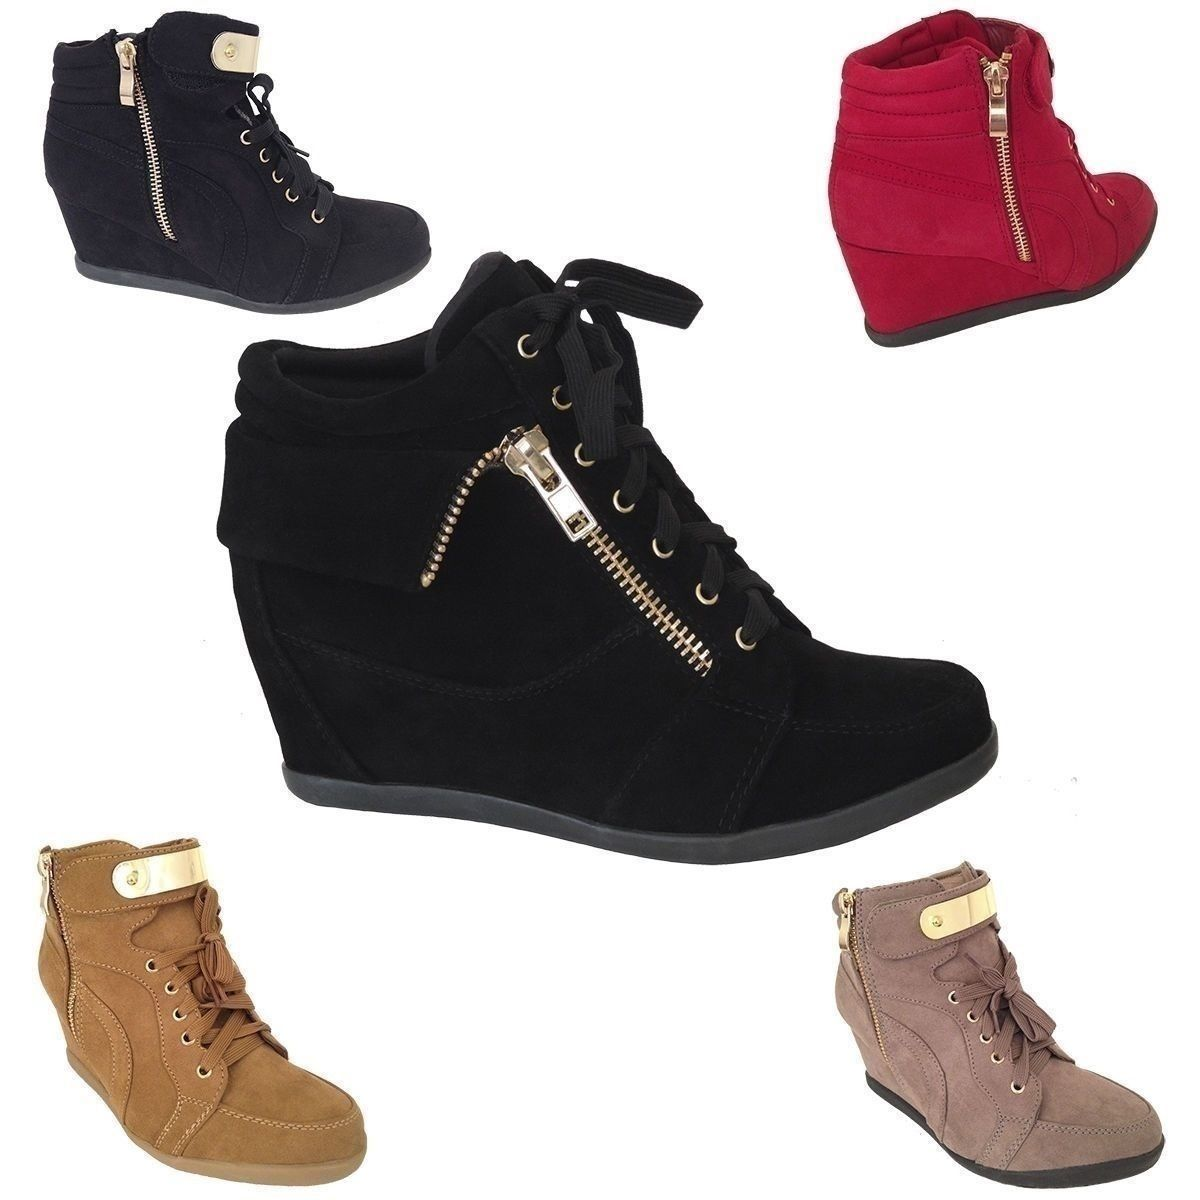 Cool NEW Womens Wedge Sneakers High Top Fashion Heels Booties Ankle Boots  Lace Shoes 2017-